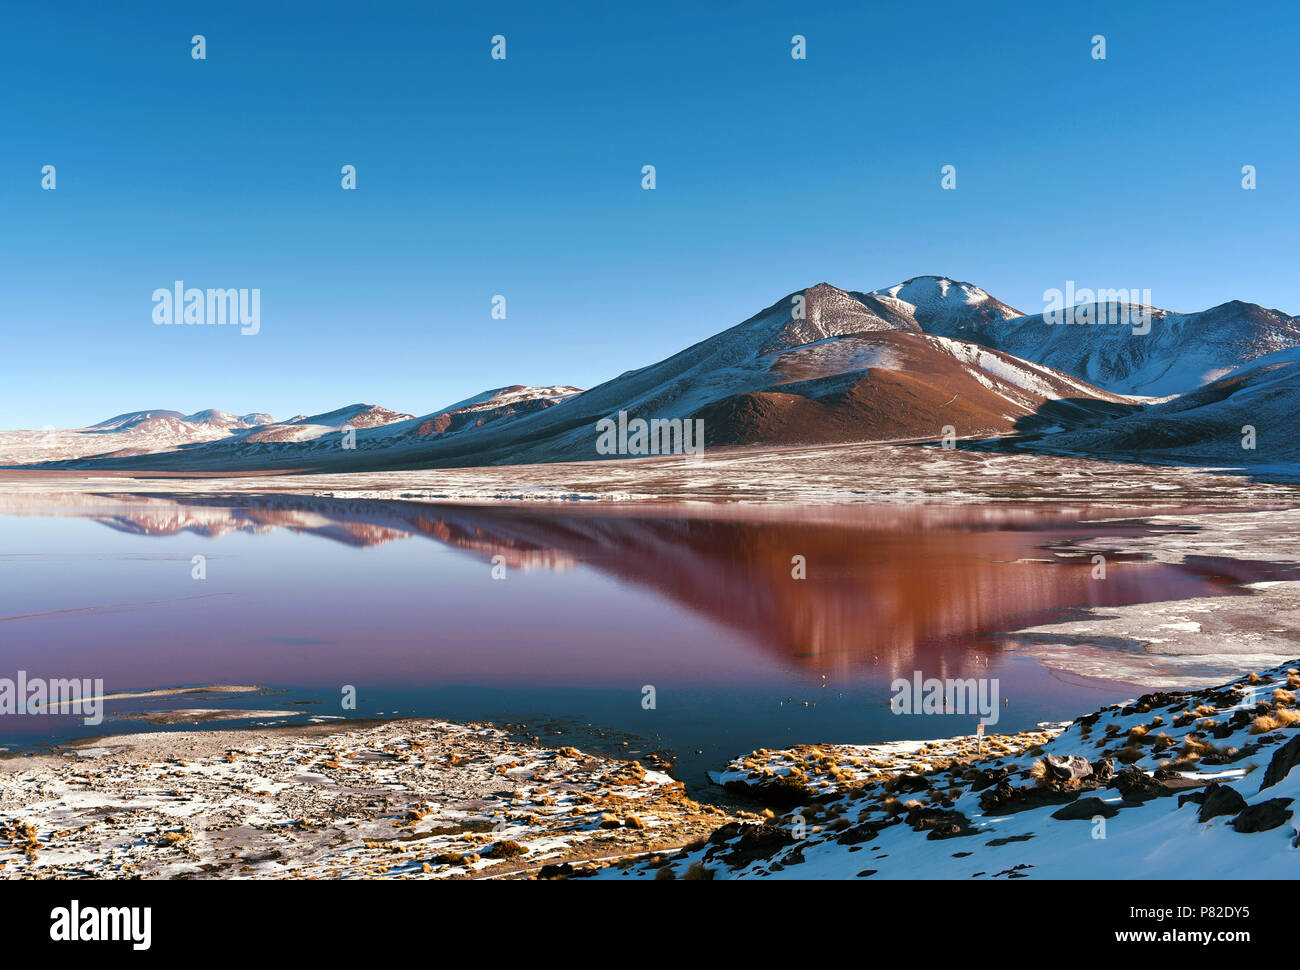 Laguna Colorada (Red Lagoon) shallow salt lake in the southwest of Bolivia, within Eduardo Avaroa Andean Fauna National Reserve. - Stock Image